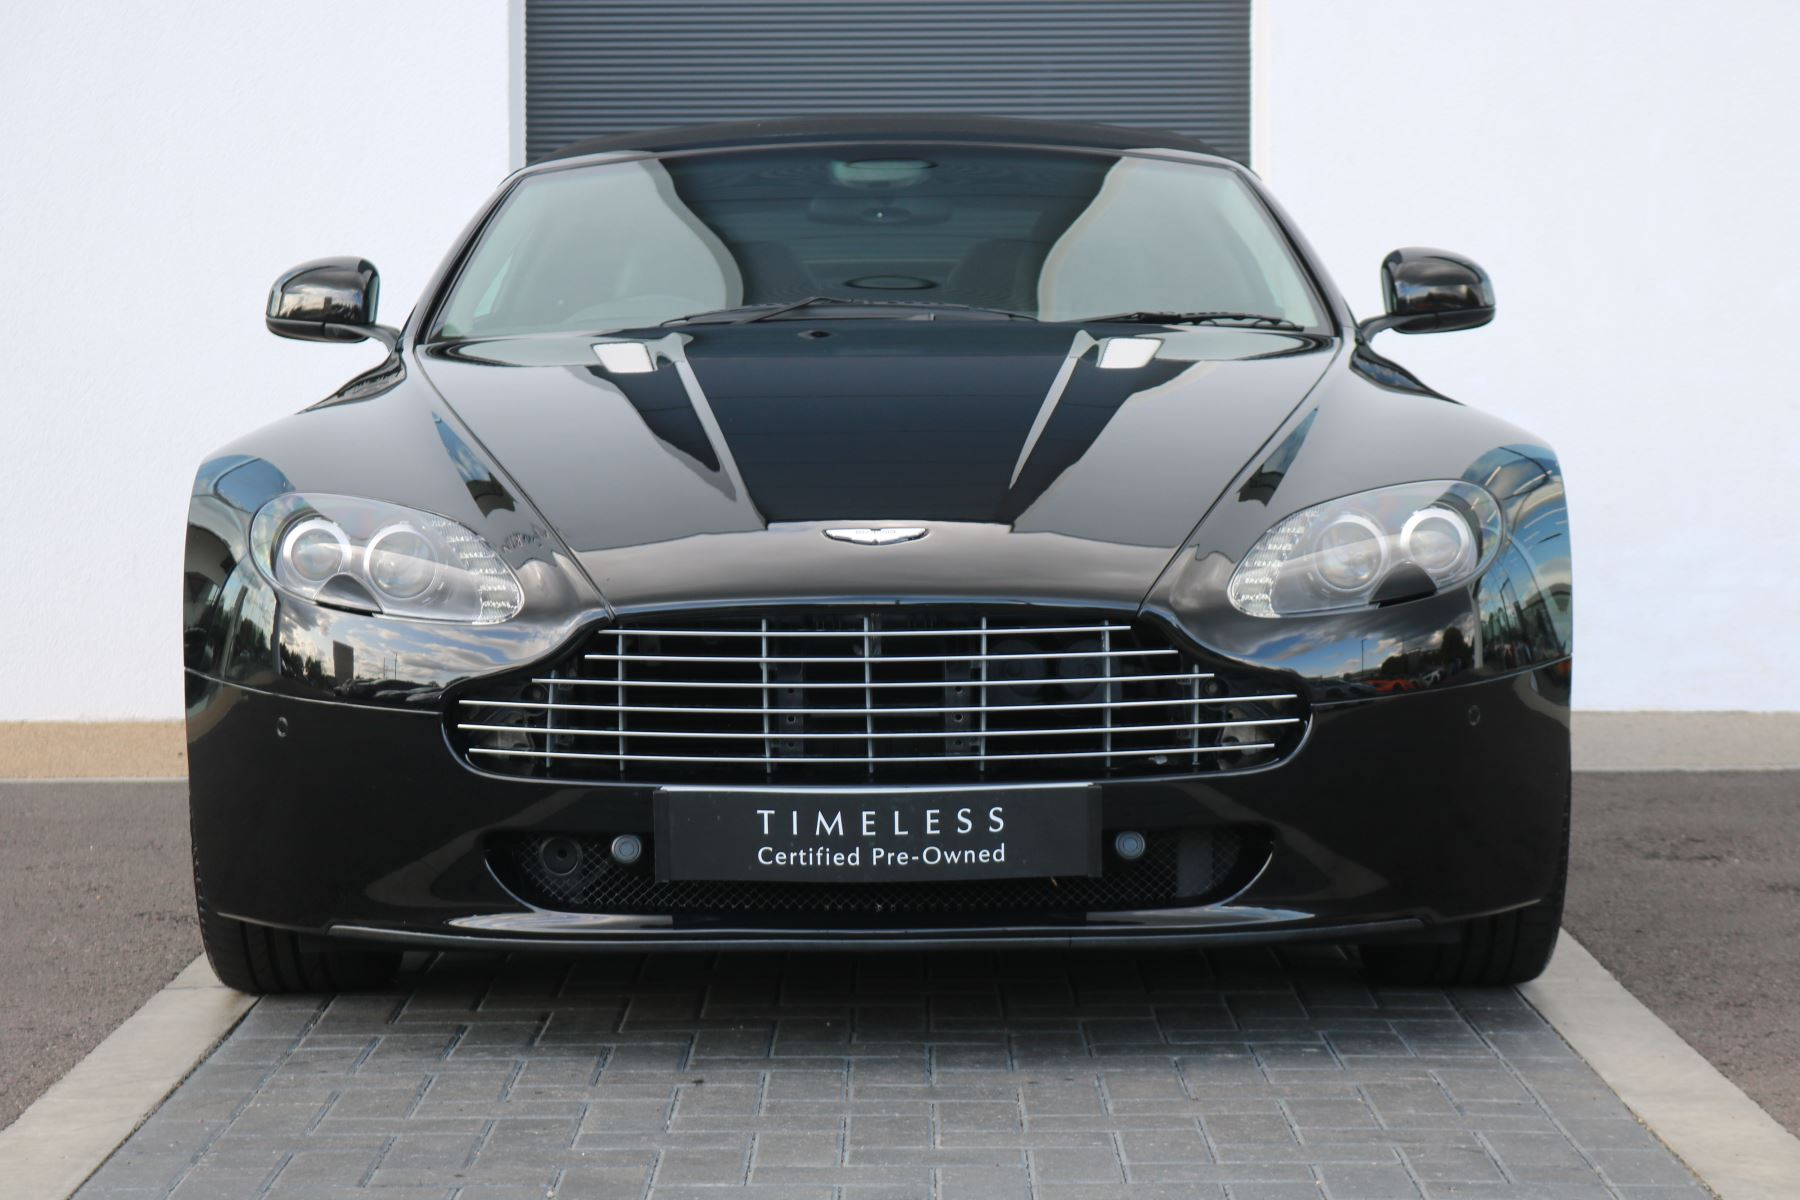 Aston Martin V8 Vantage Roadster 2dr Sportshift [420] 4.7 Automatic 3 door Roadster (2010)